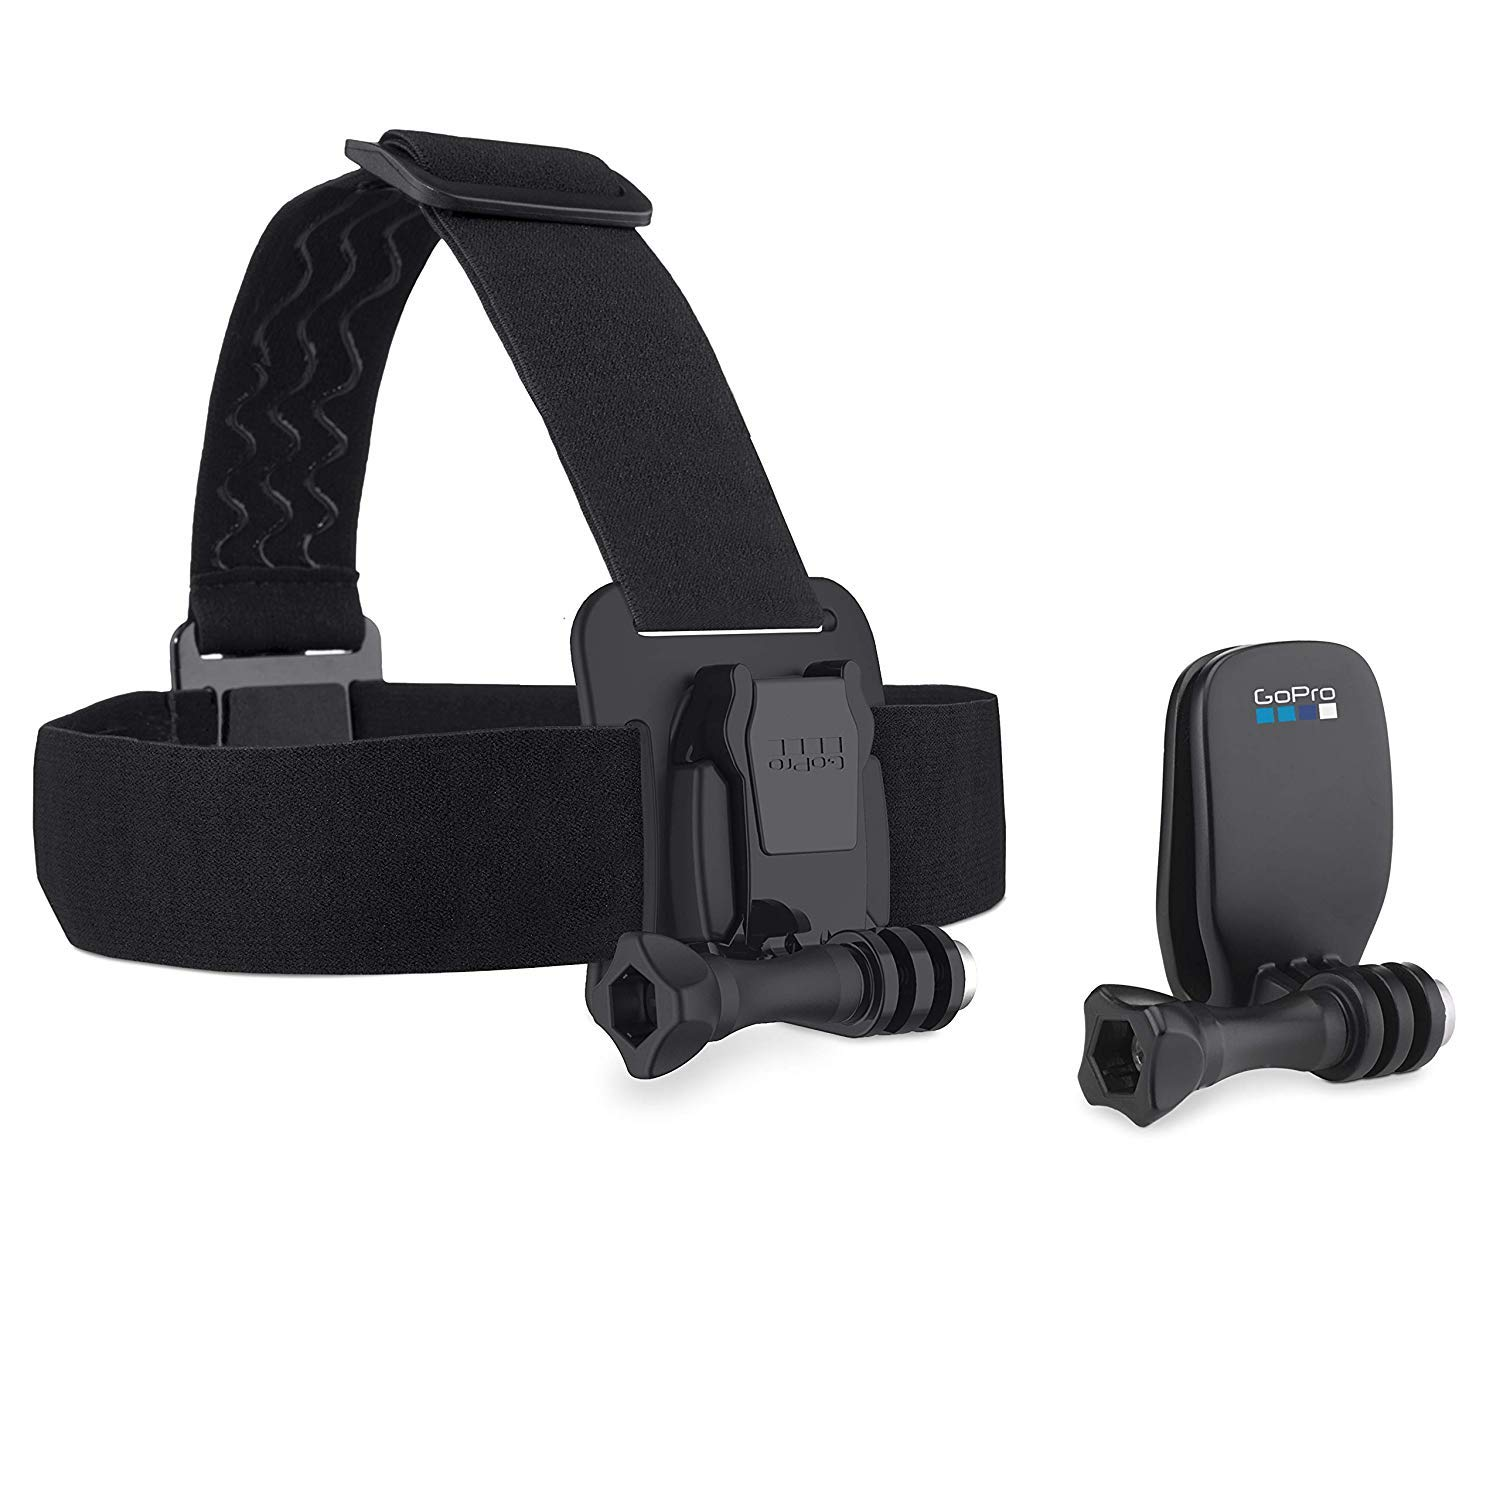 Head Strap//Hat Quick Clip//Backpack Clip Mount 6 3+ Black Hero+ LCD Silver DJI Osmo Action Hero 4 3 5 Session Black CamKix Head /& Backpack Mount Bundle Compatible with GoPro Hero 7